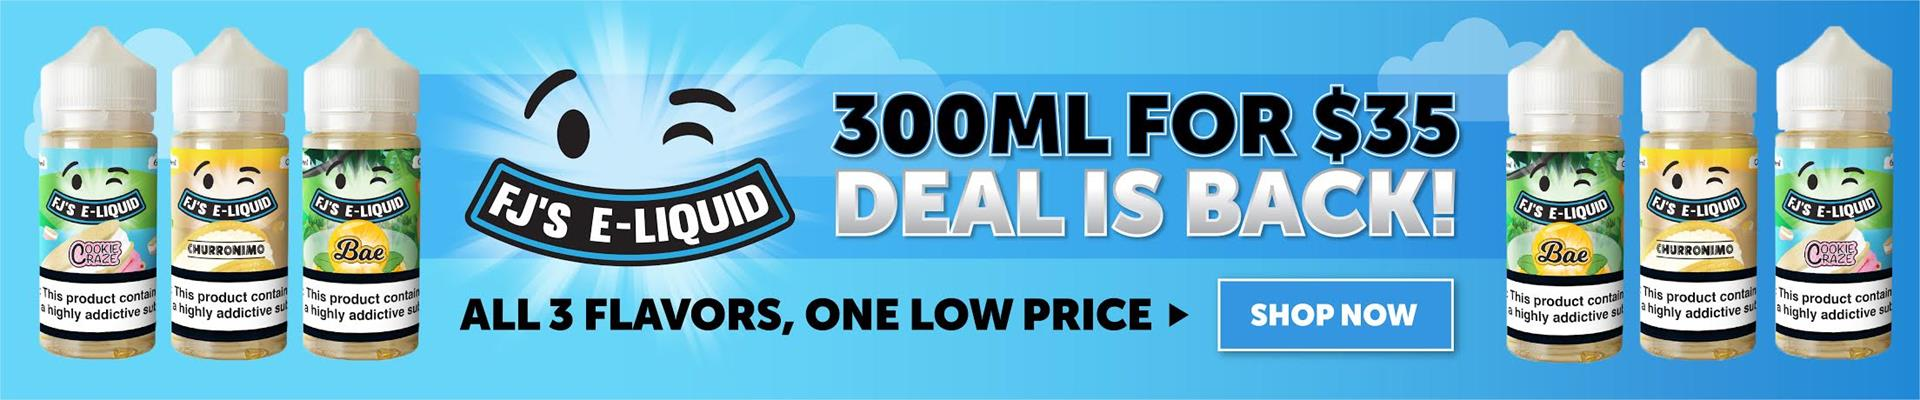 FJ's SUPER DEAL